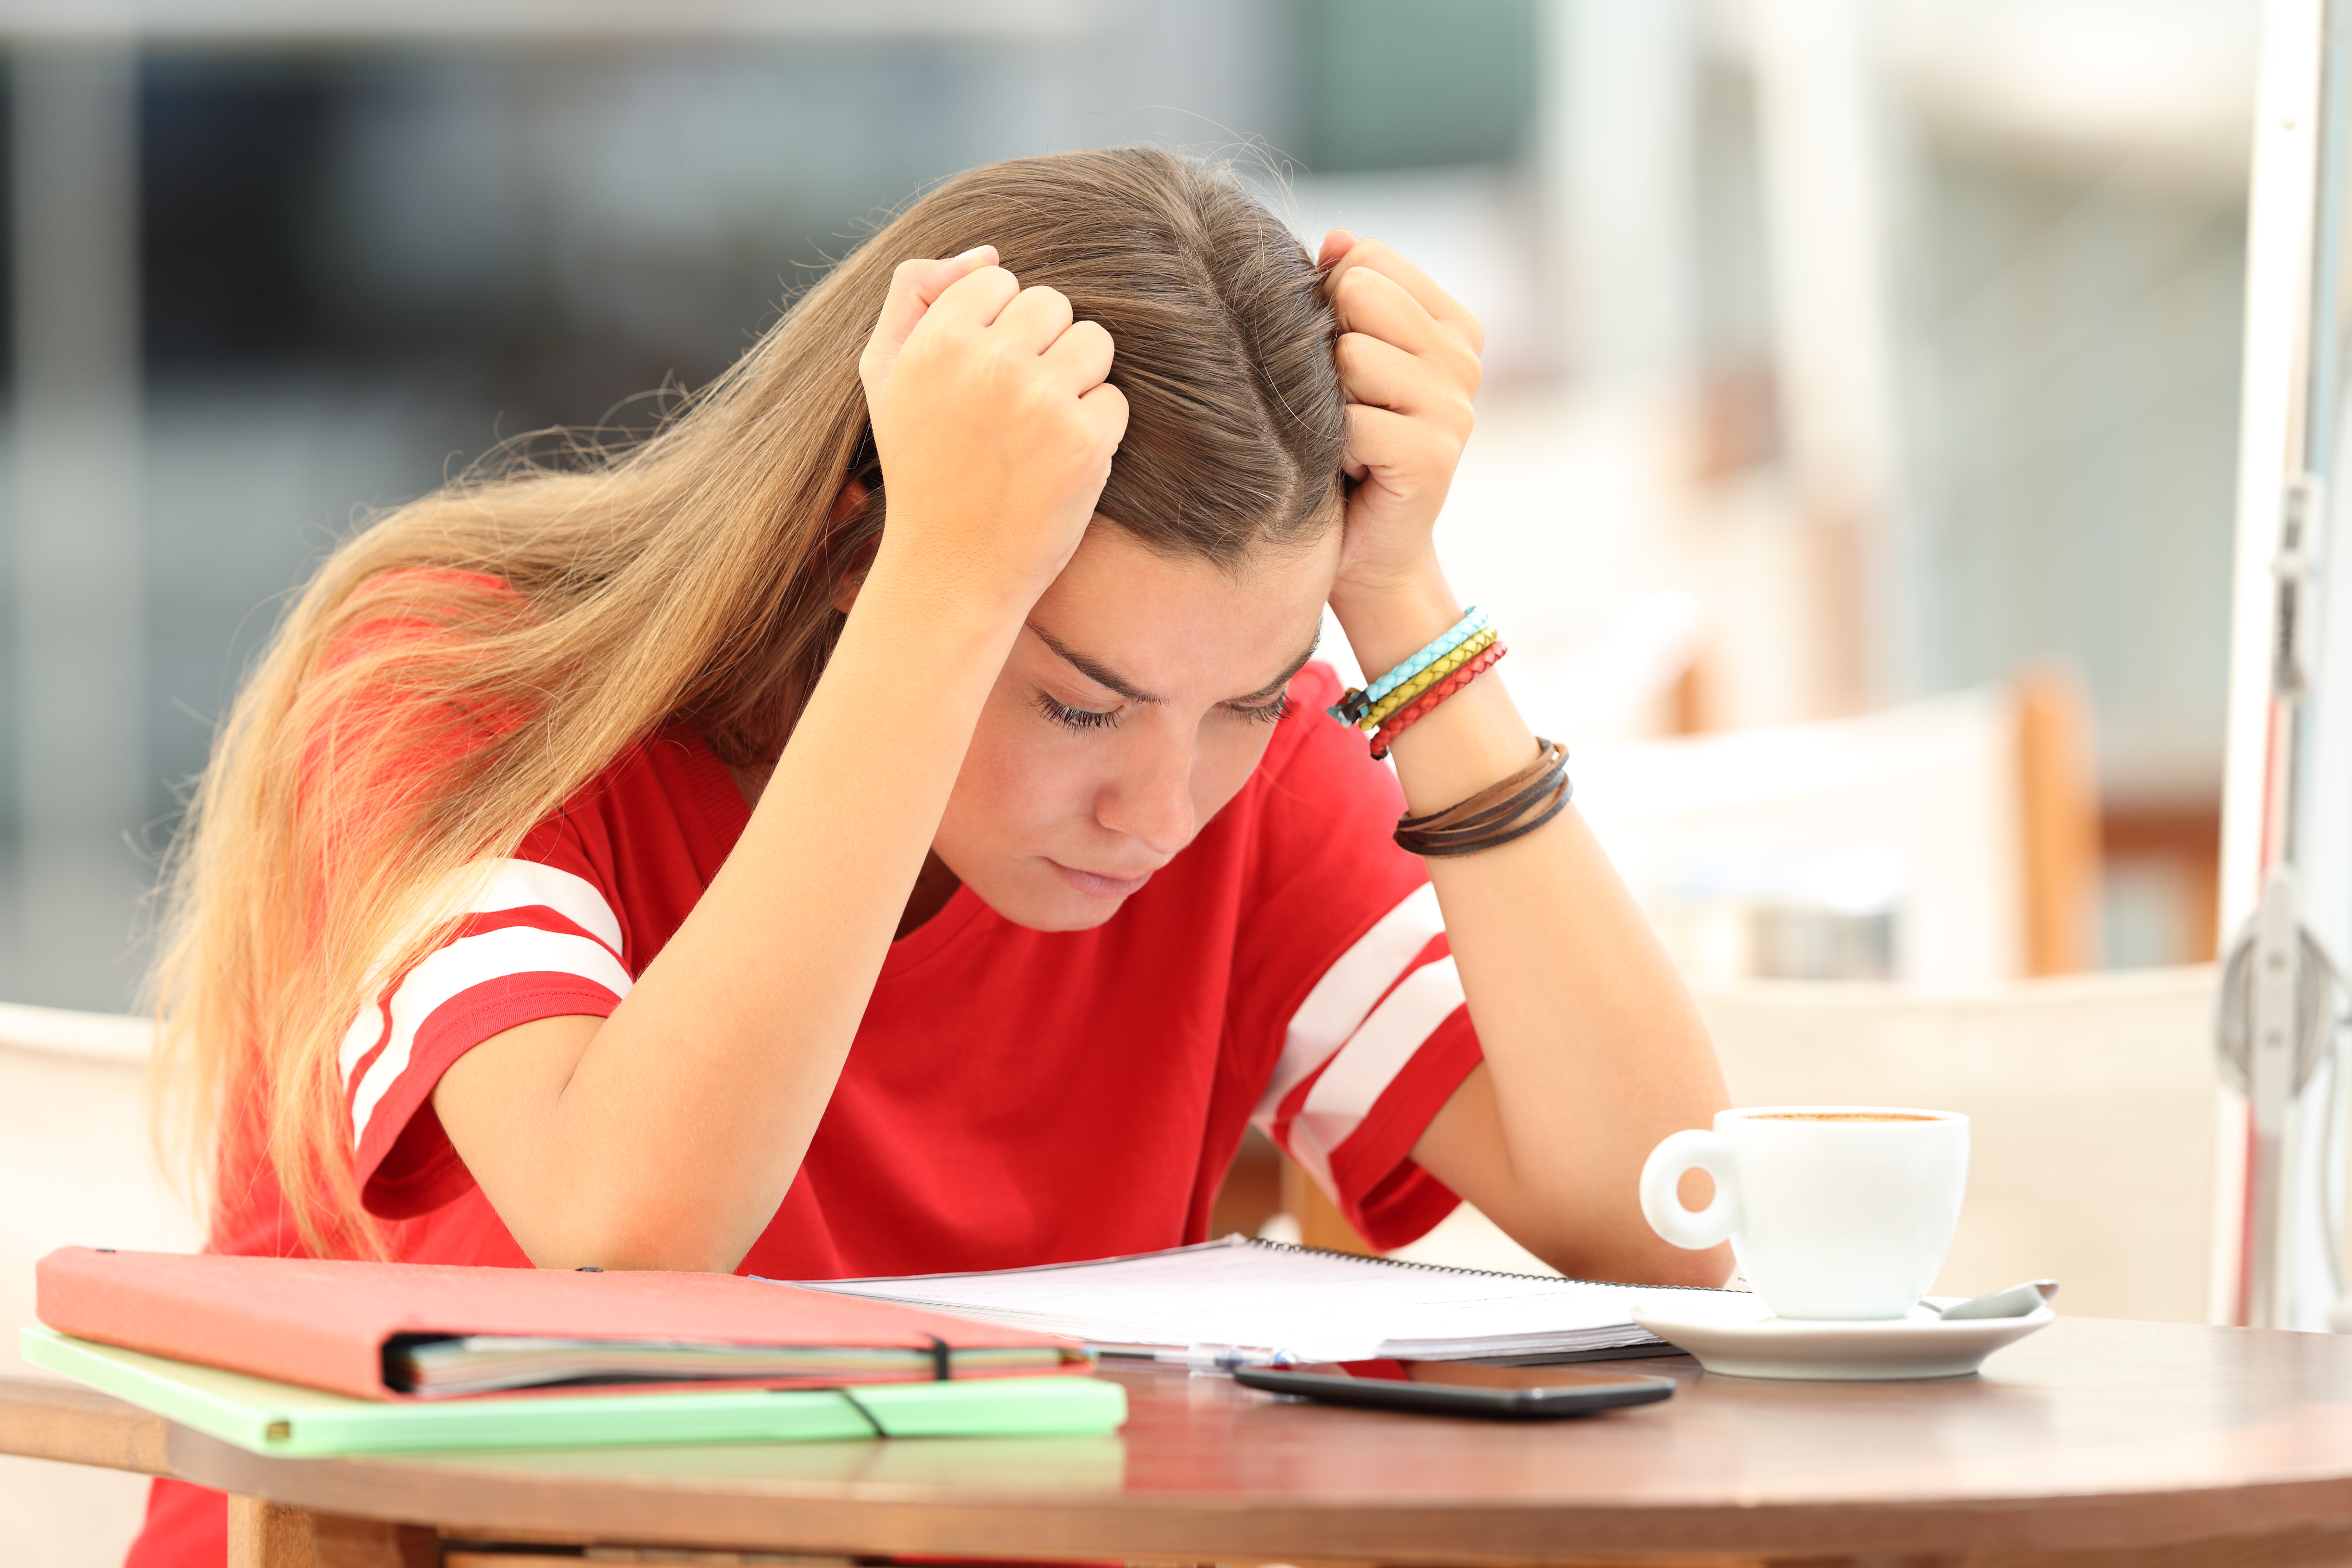 Weekend job news: Women and youth hit hardest